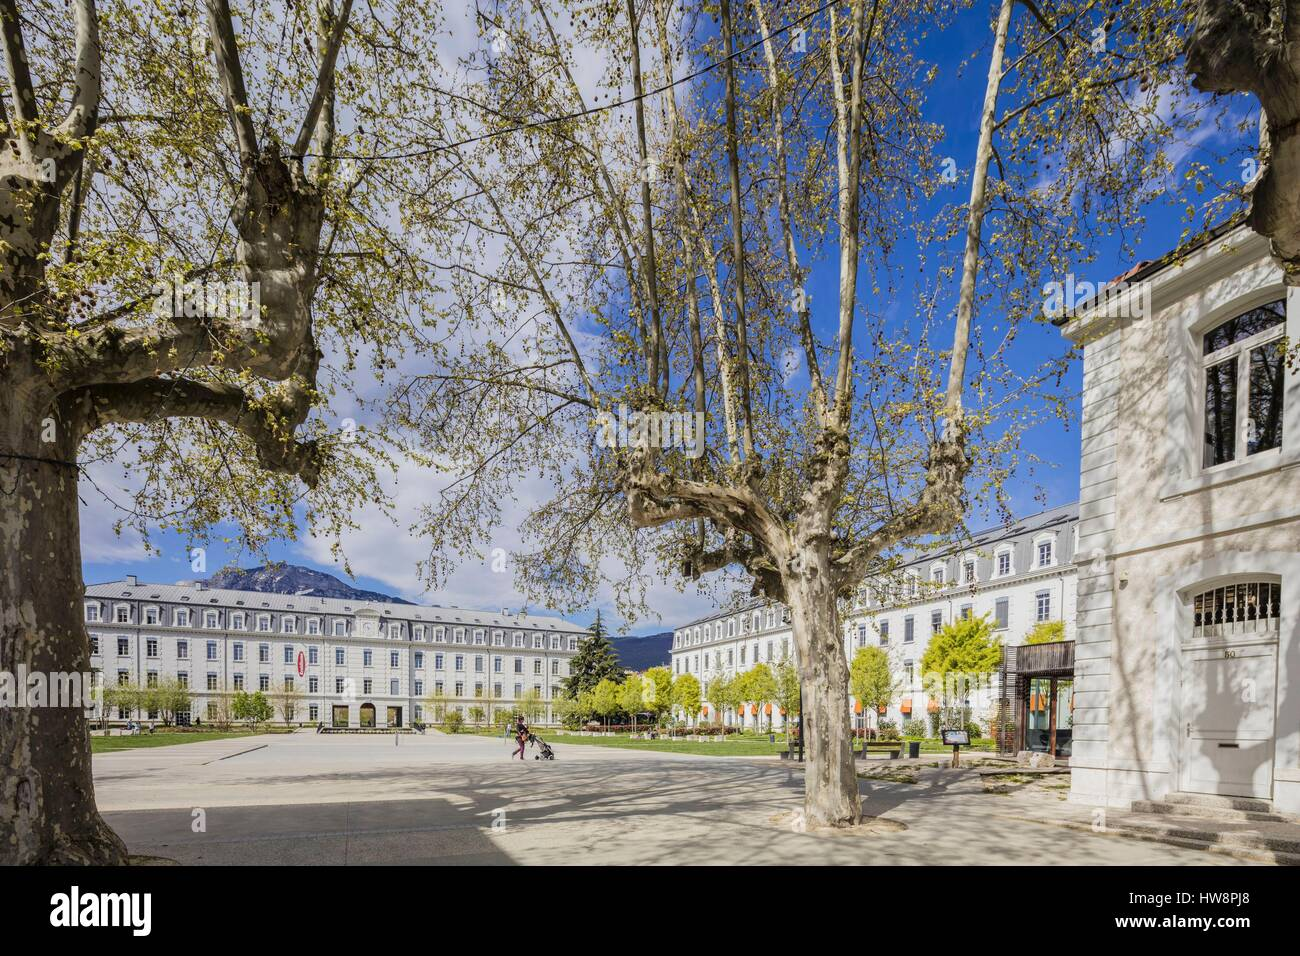 France, Isere, Grenoble, the Eco Quartier de Bonne, the Cour d'honneur created at the place of the ancient barracks, - Stock Image